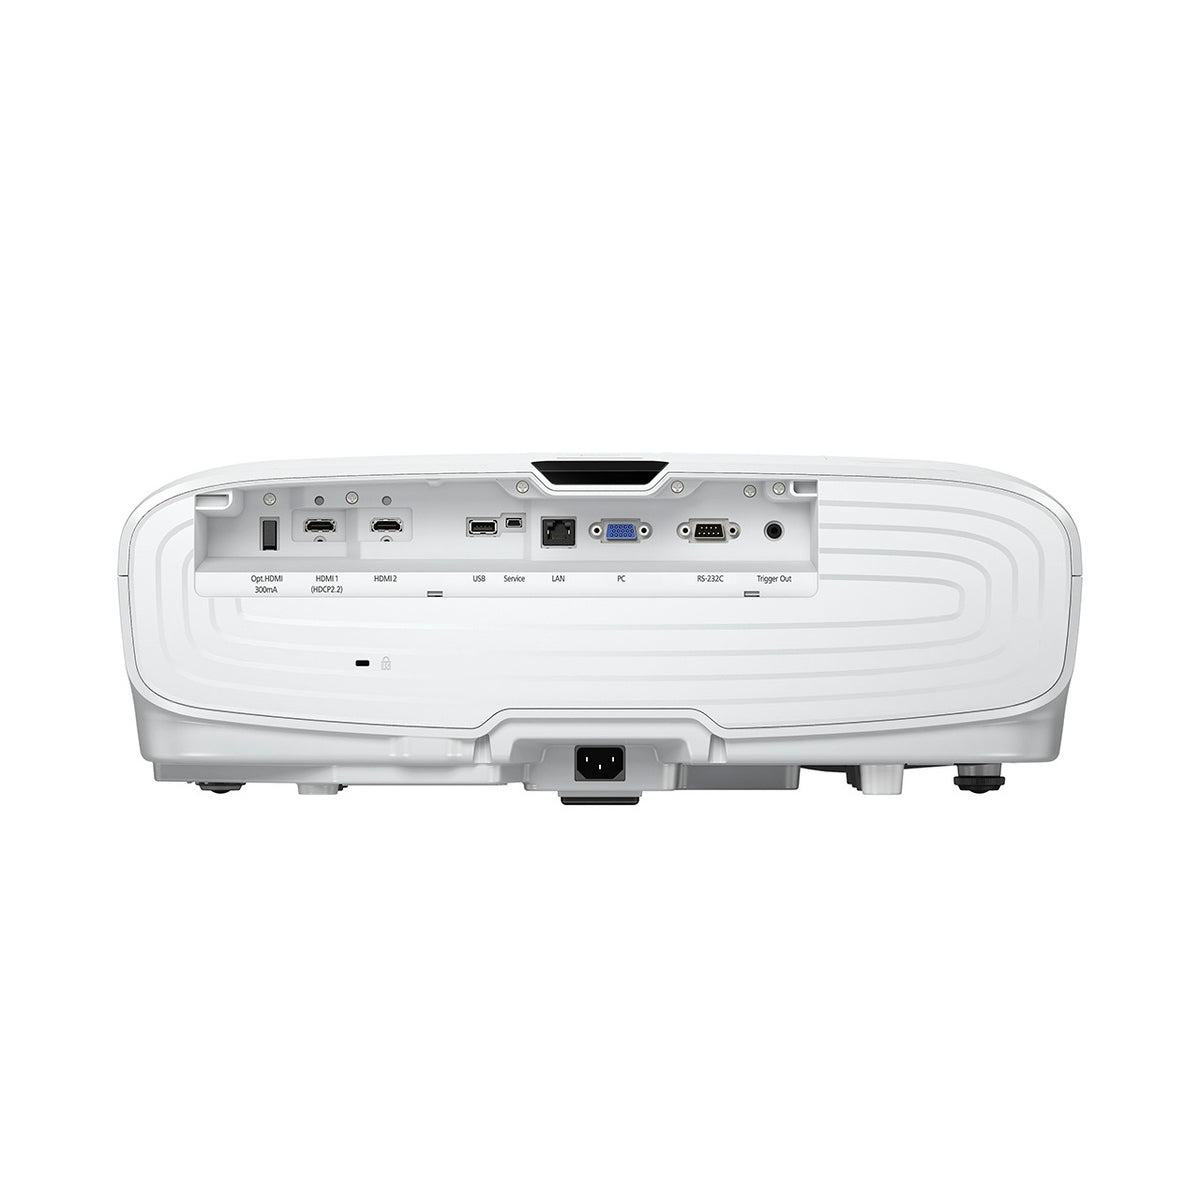 Epson EH-TW8300 (Home Theatre Projector) - AVStore